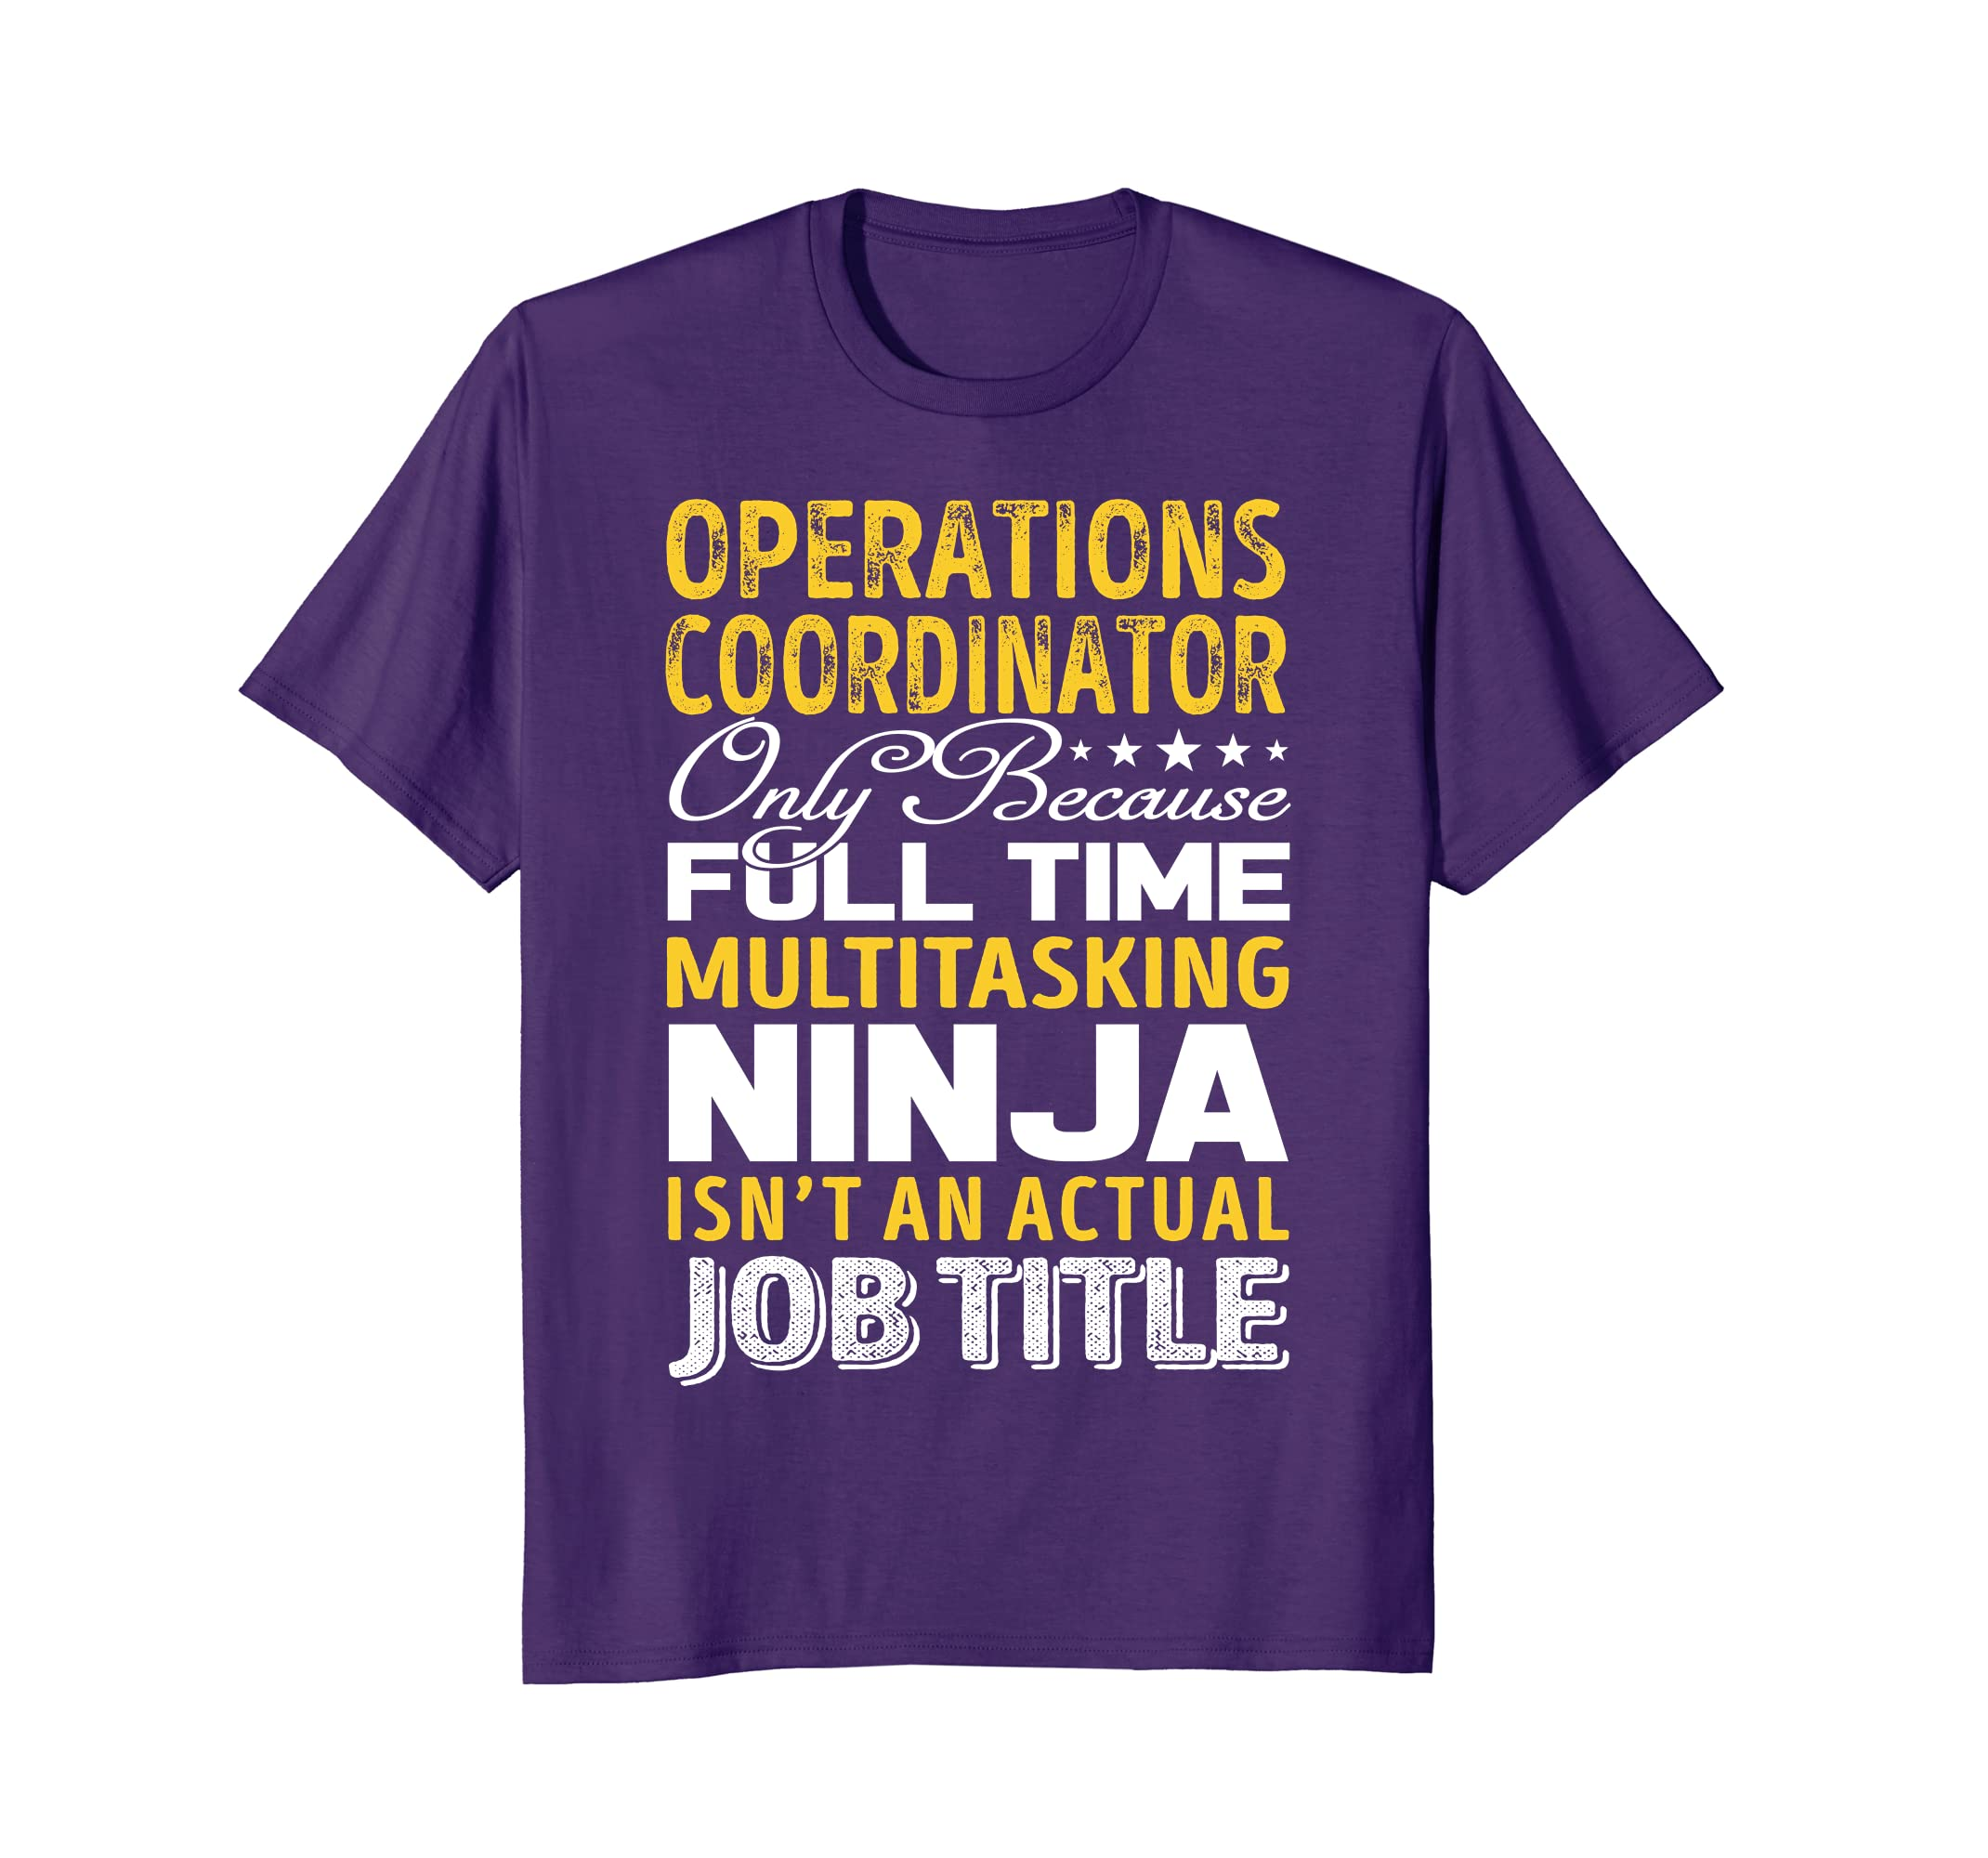 Operations Coordinator Isnt An Actual Job Title TShirts